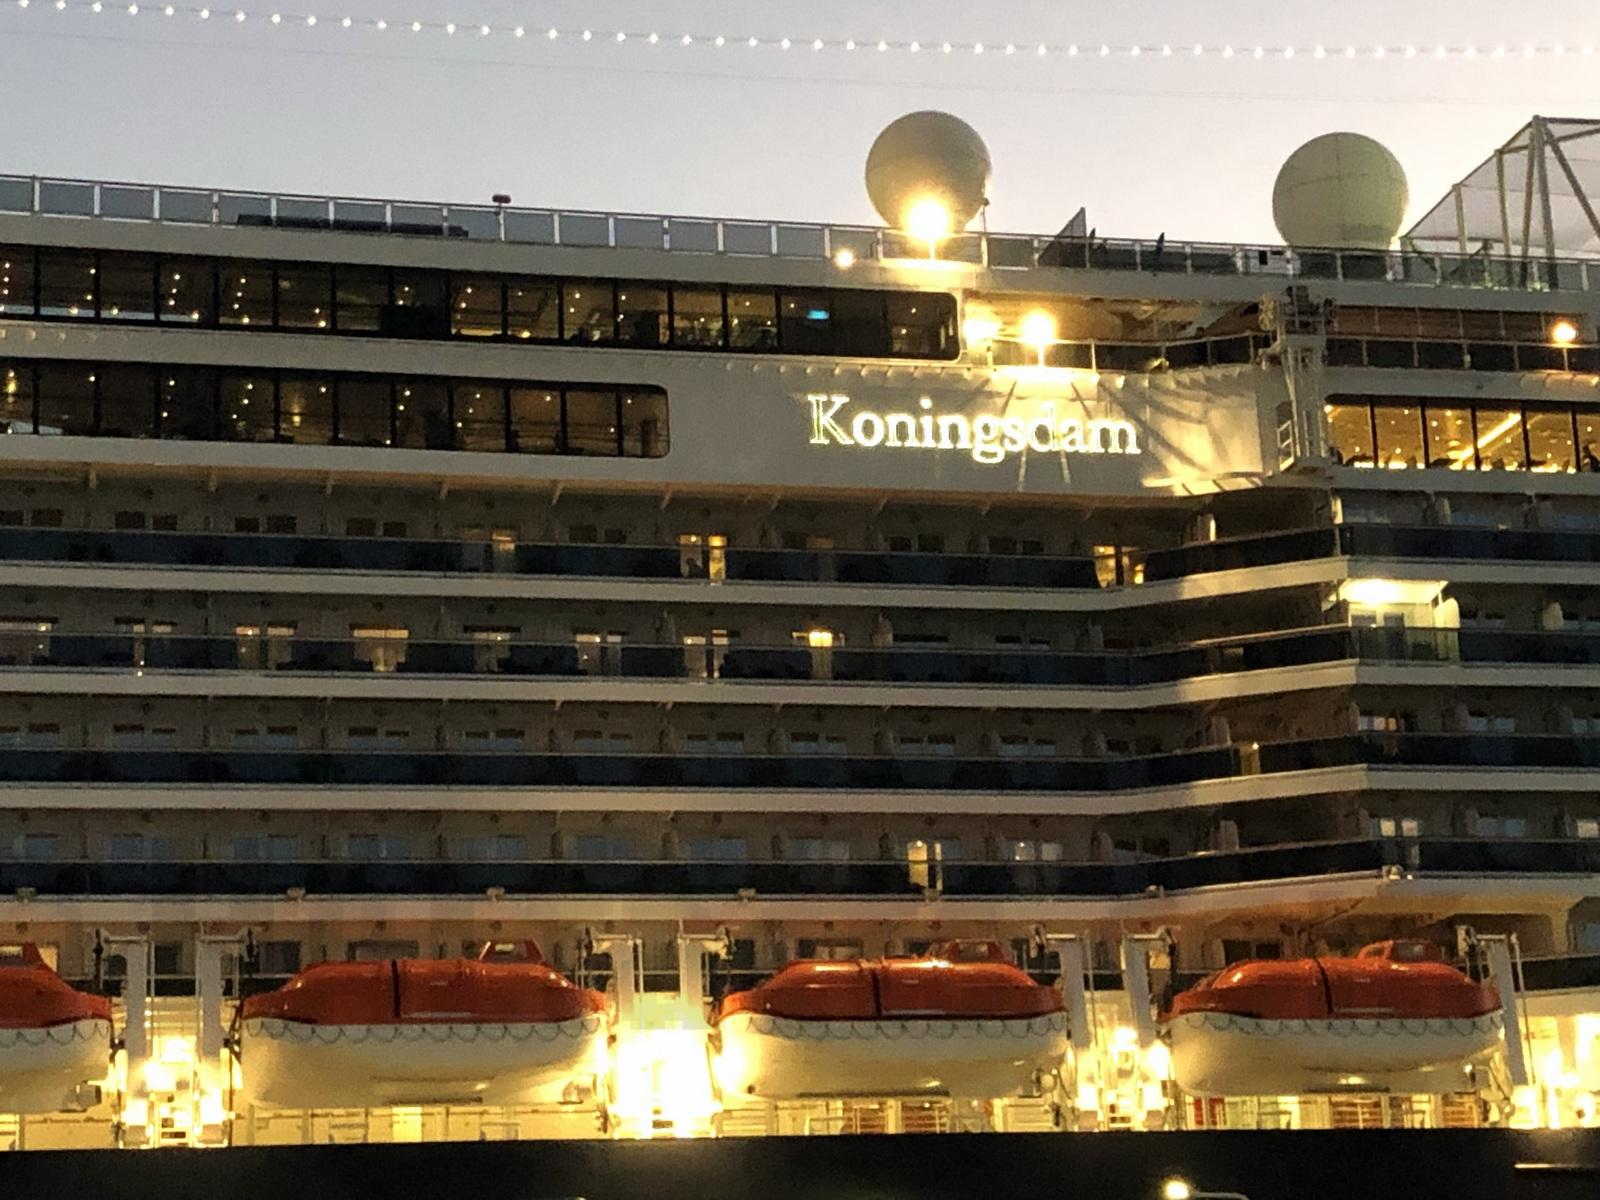 kodm4012-Koningsdam at night